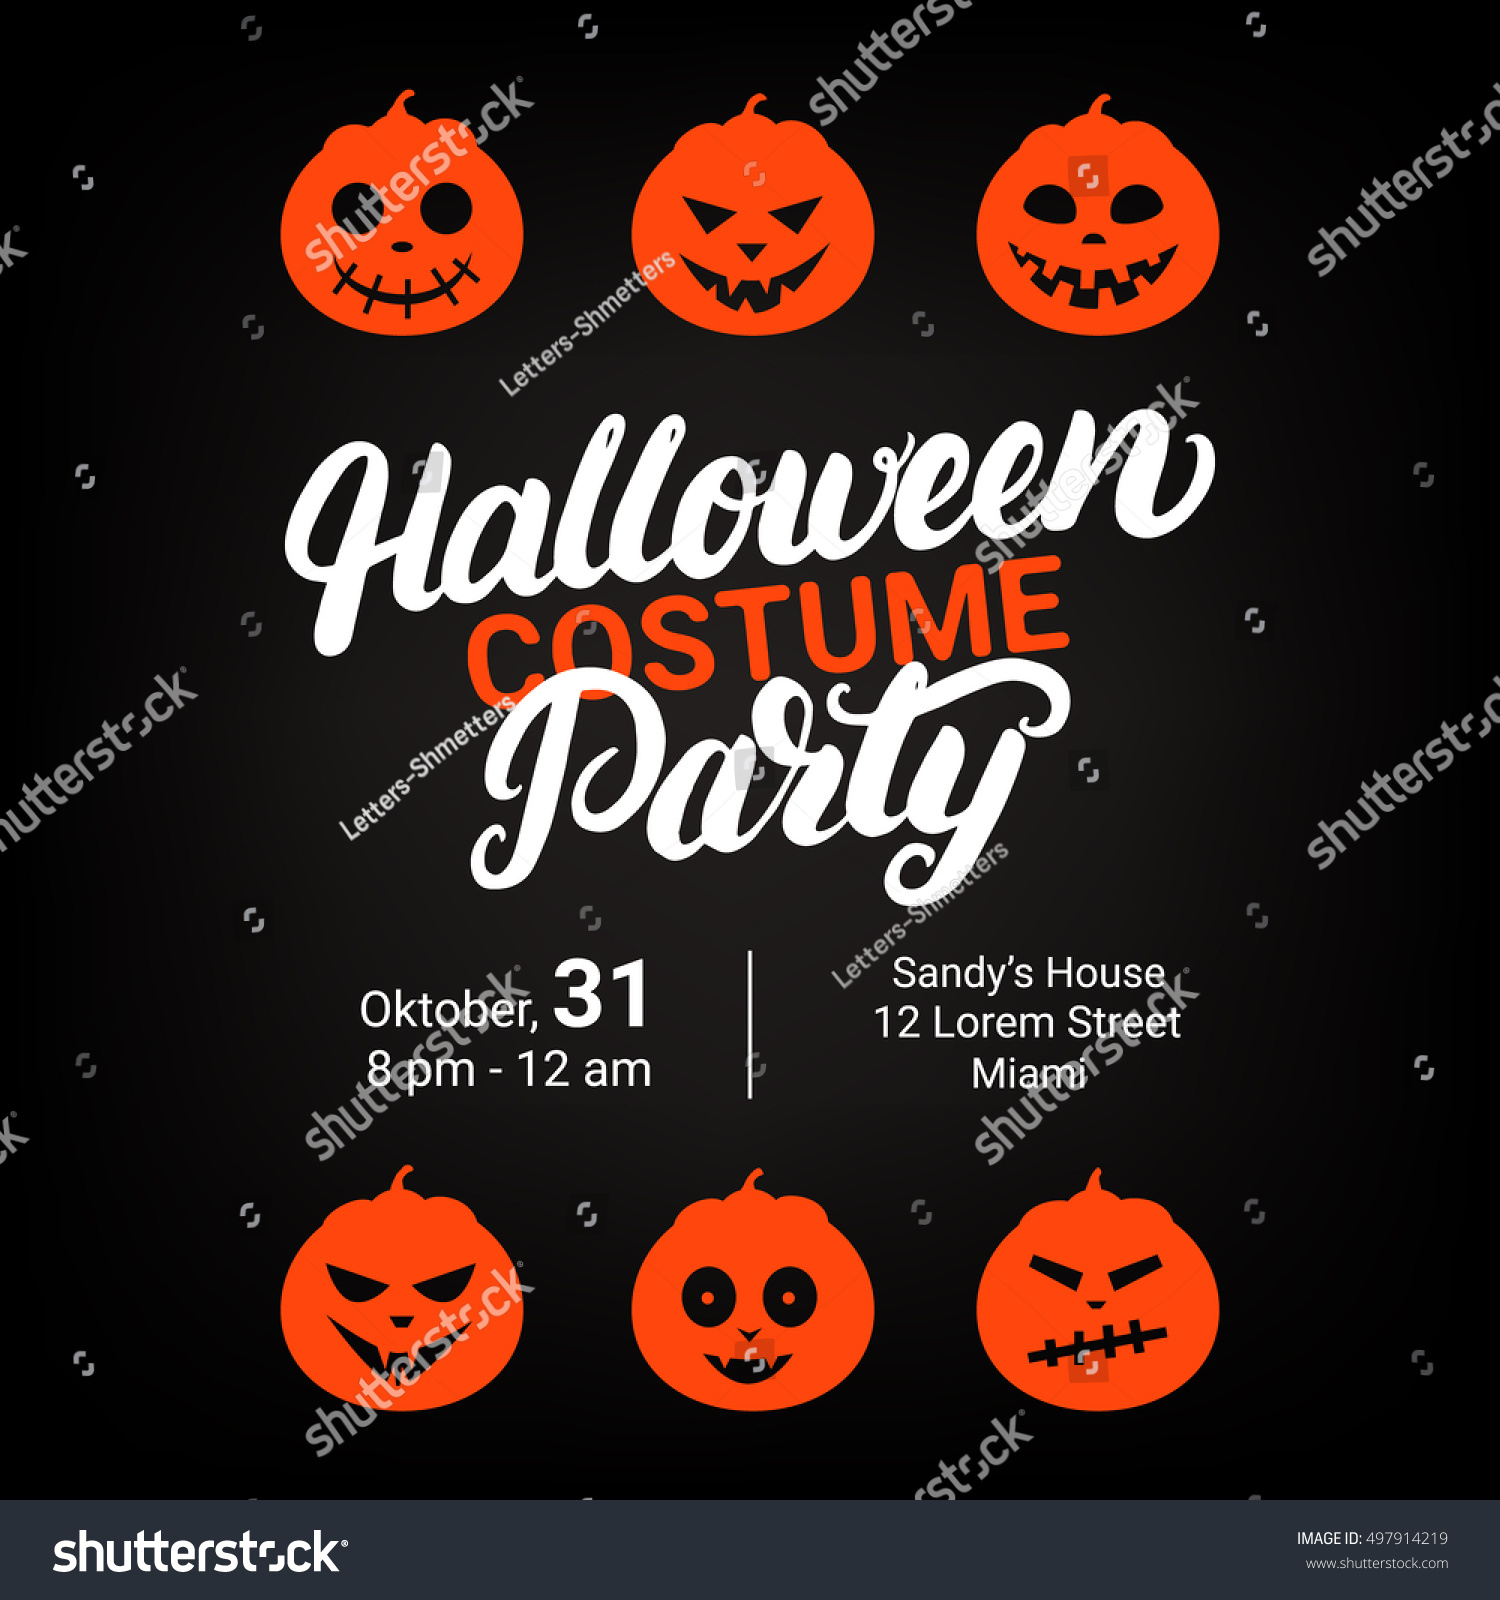 Halloween Costume Party Hand Written Lettering Stock Vector ...